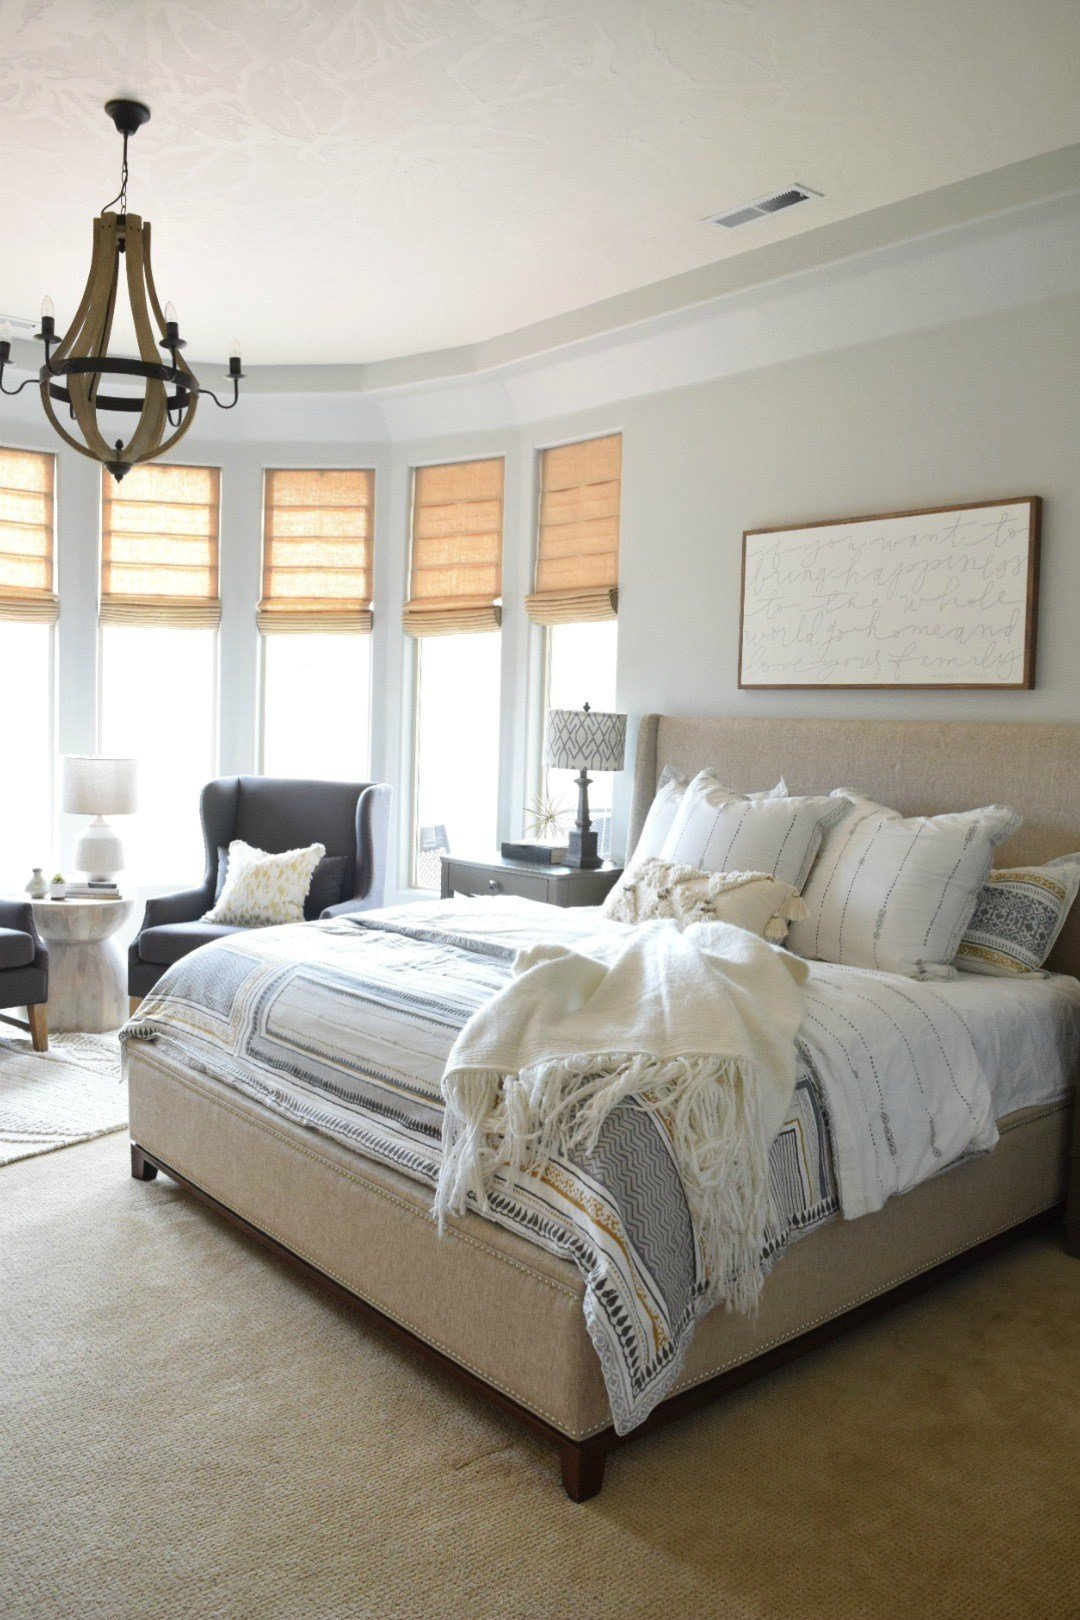 Best Modern Home Refresh With Simply White Paint Nesting With Grace With Pictures